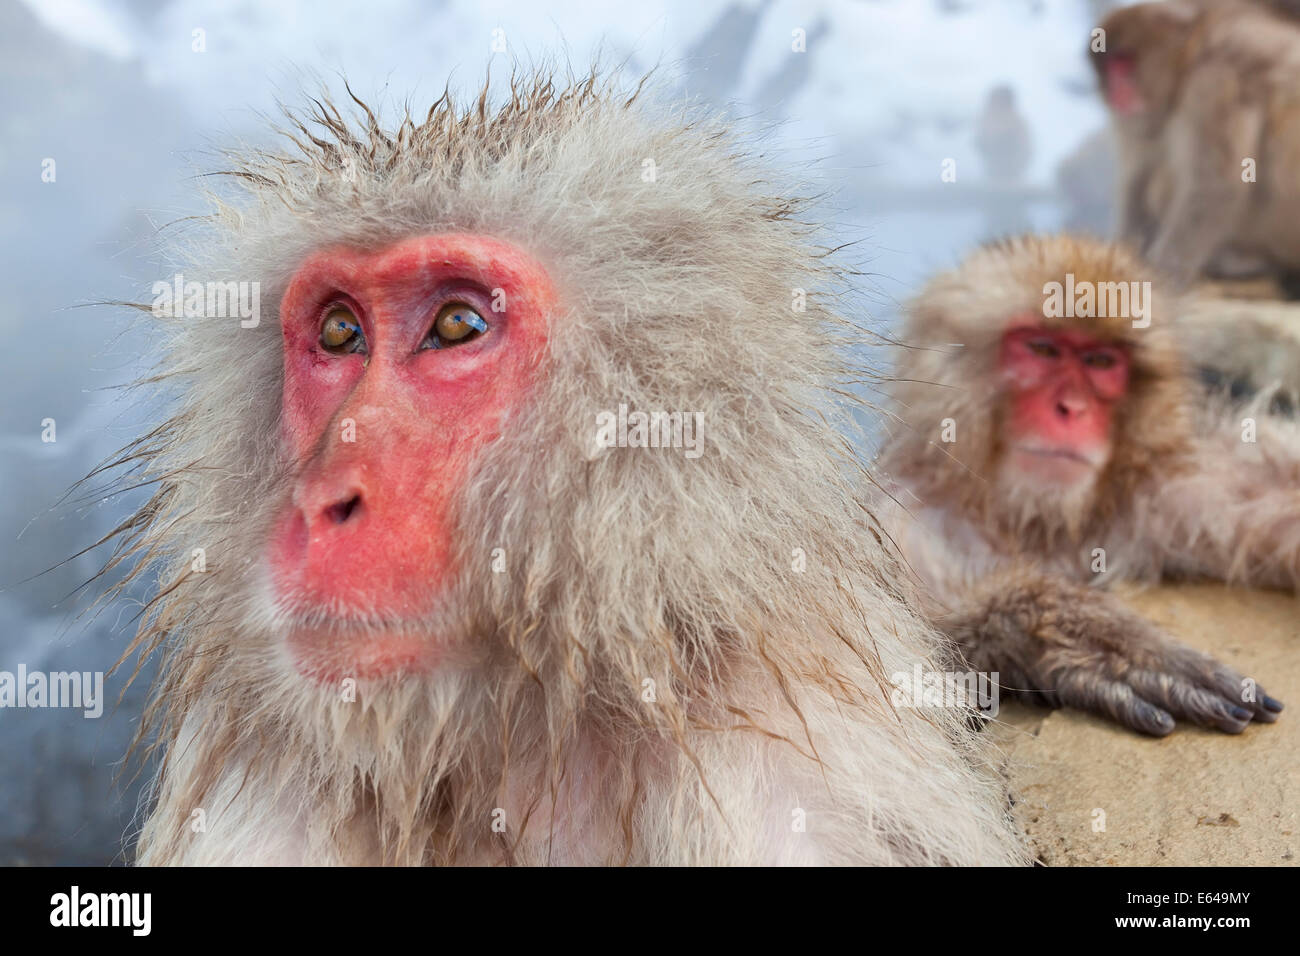 Macaque japonais (Macaca fuscata)/ Snow monkey, Parc National de Joshin-etsu, Honshu, Japan Photo Stock